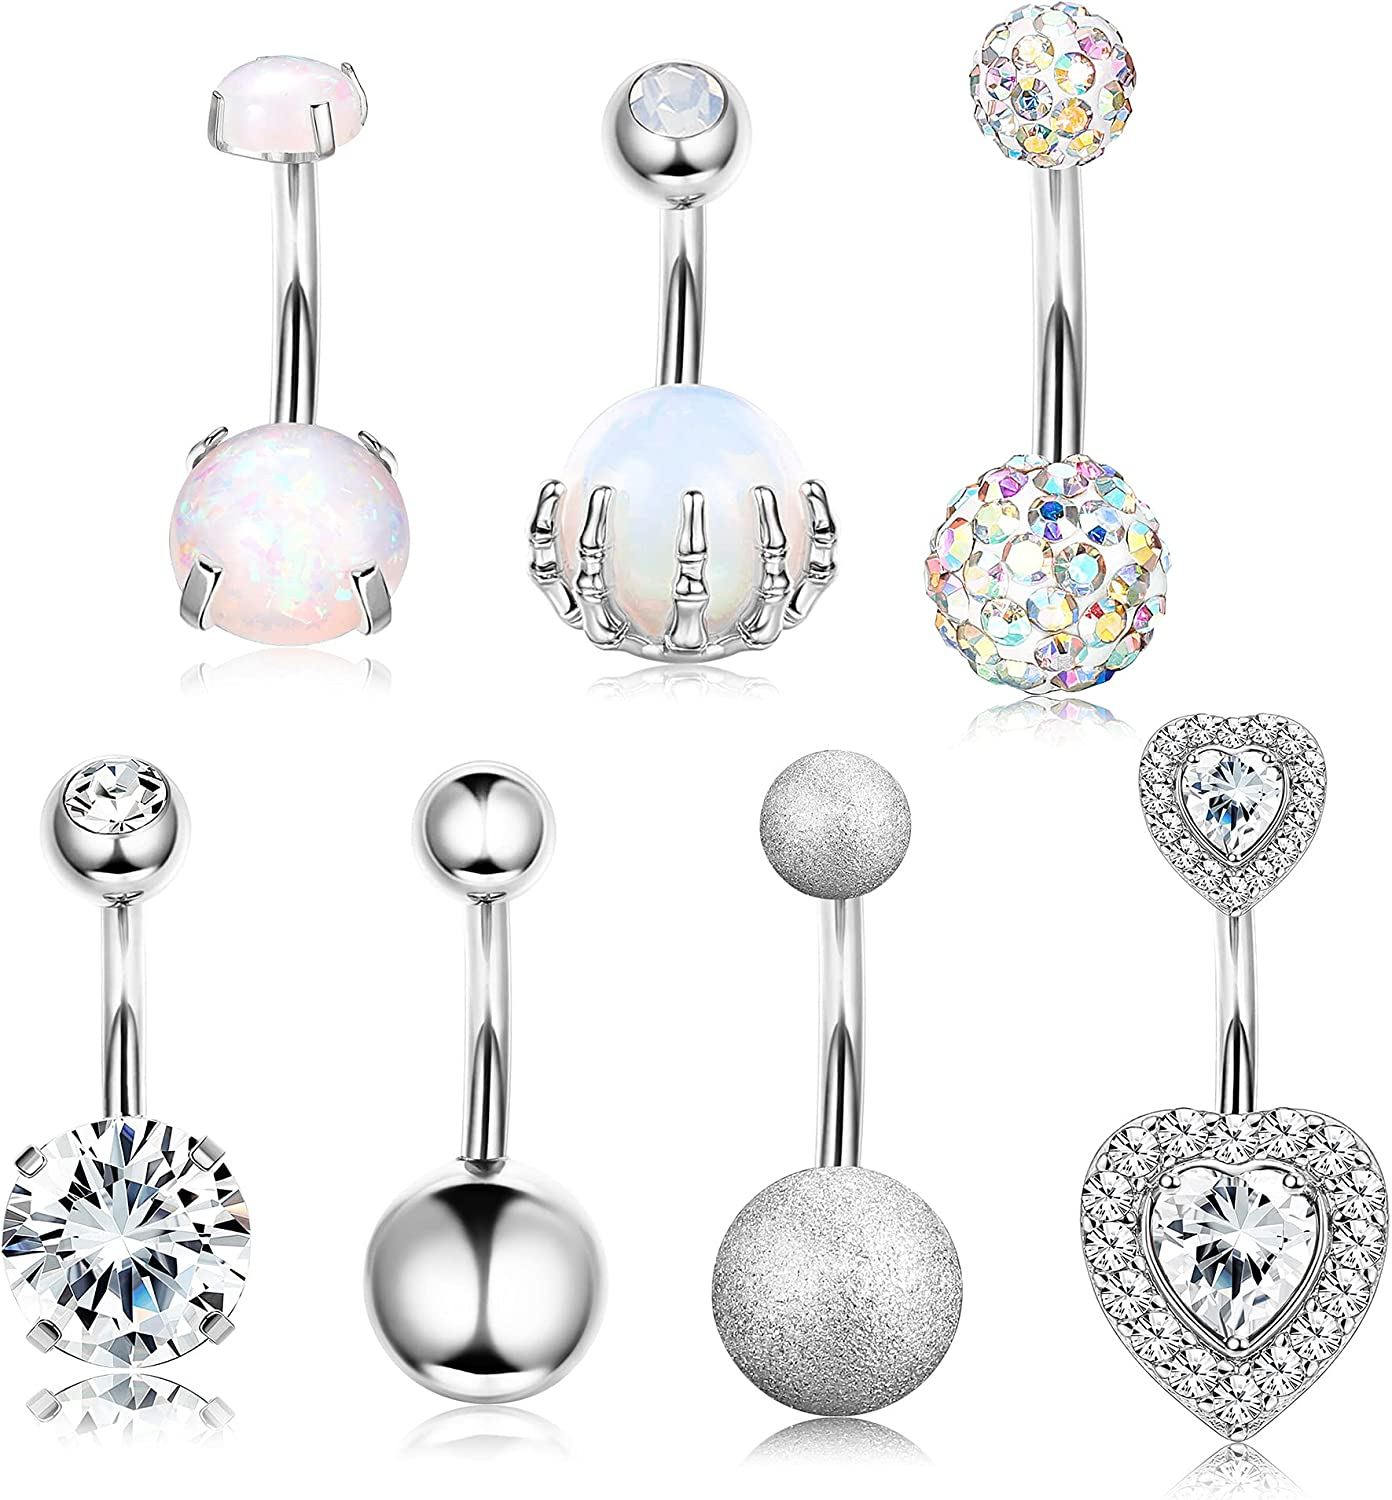 DOLOTTA 7 Pcs 14G 316L Stainless Steel Belly Button Rings for Women Surgical Steel Round CZ Heart Opal Belly Button Piercing Jewelry Curved Navel Ring